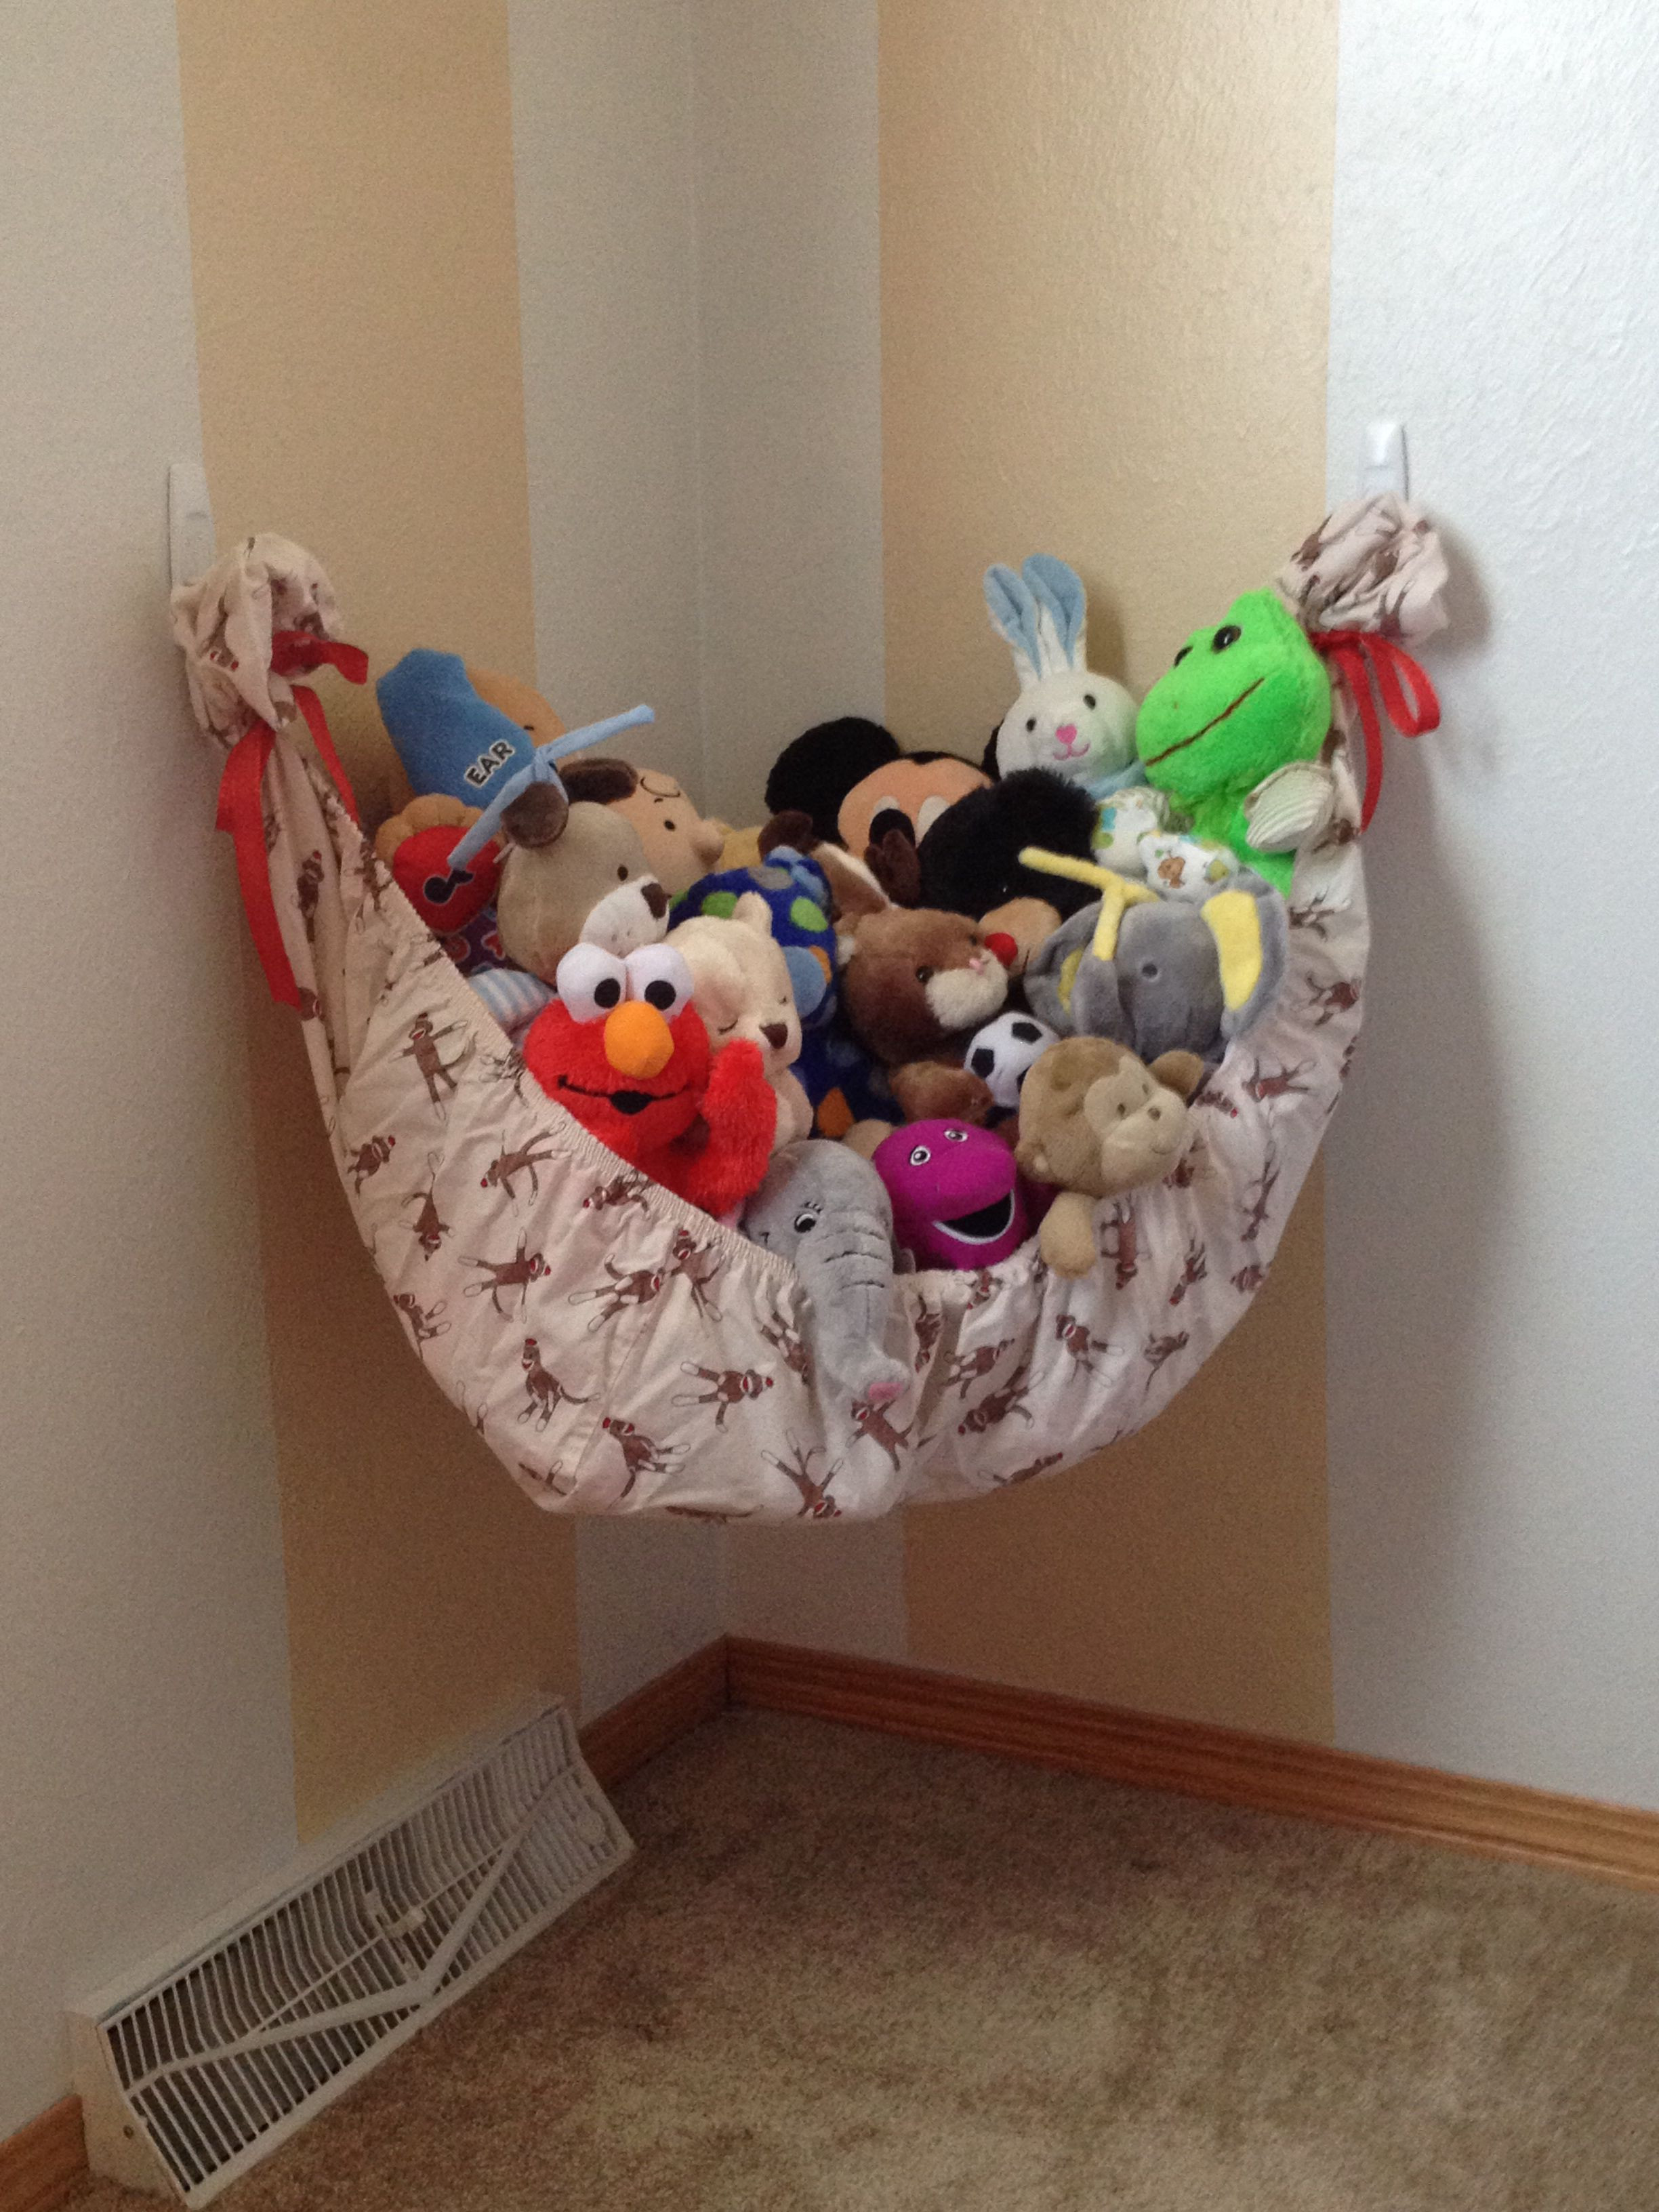 Best ideas about DIY Stuffed Animal . Save or Pin Do It Yourself Stuffed Animal Hammock Now.